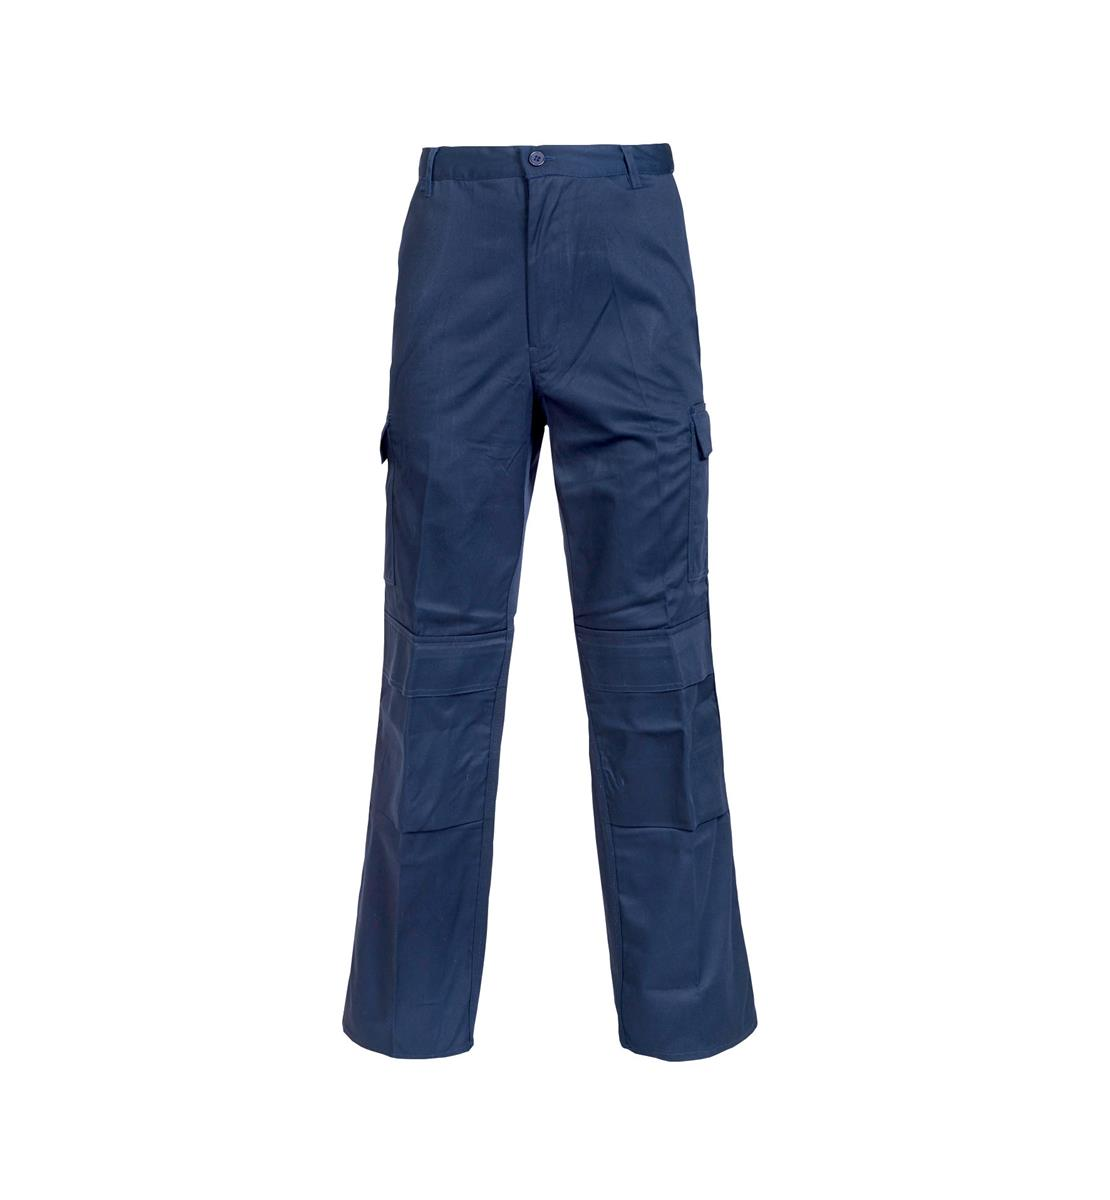 Combat Trousers Polycotton with Pockets 36in Regular Navy Blue Ref PCTHWN36 *1-3 Days Lead Time*